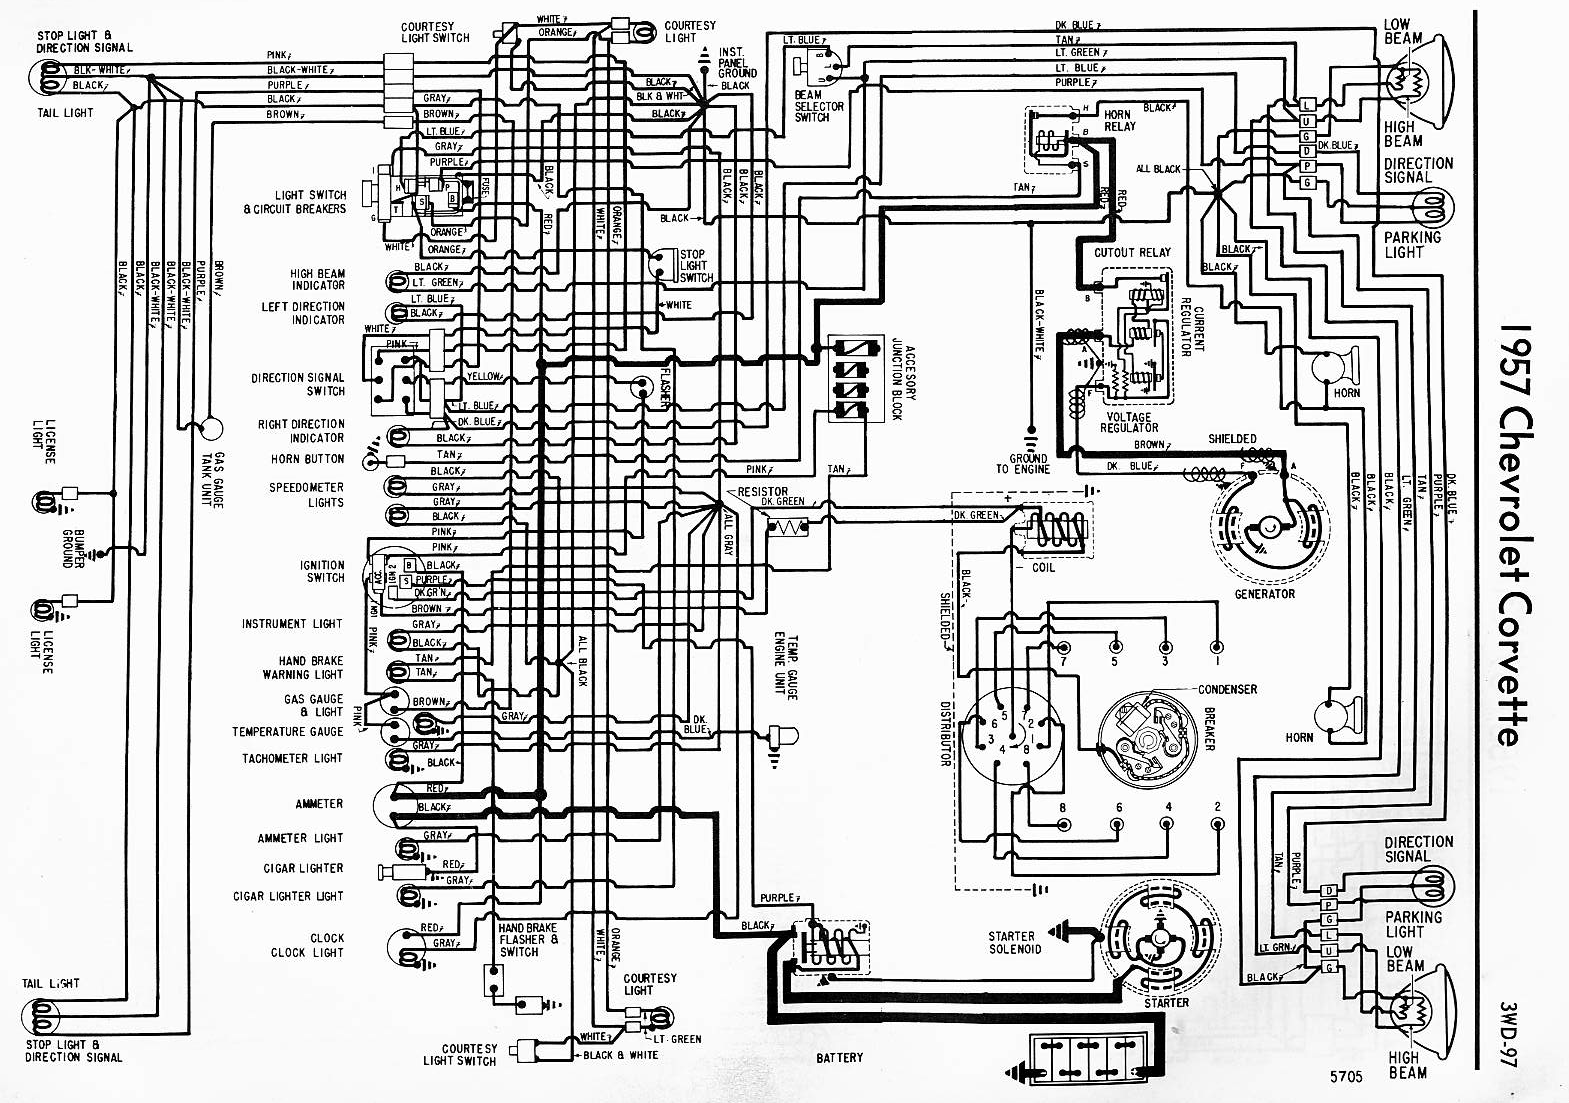 1957 corvette wiring diagram | willcox corvette, inc., Wiring diagram